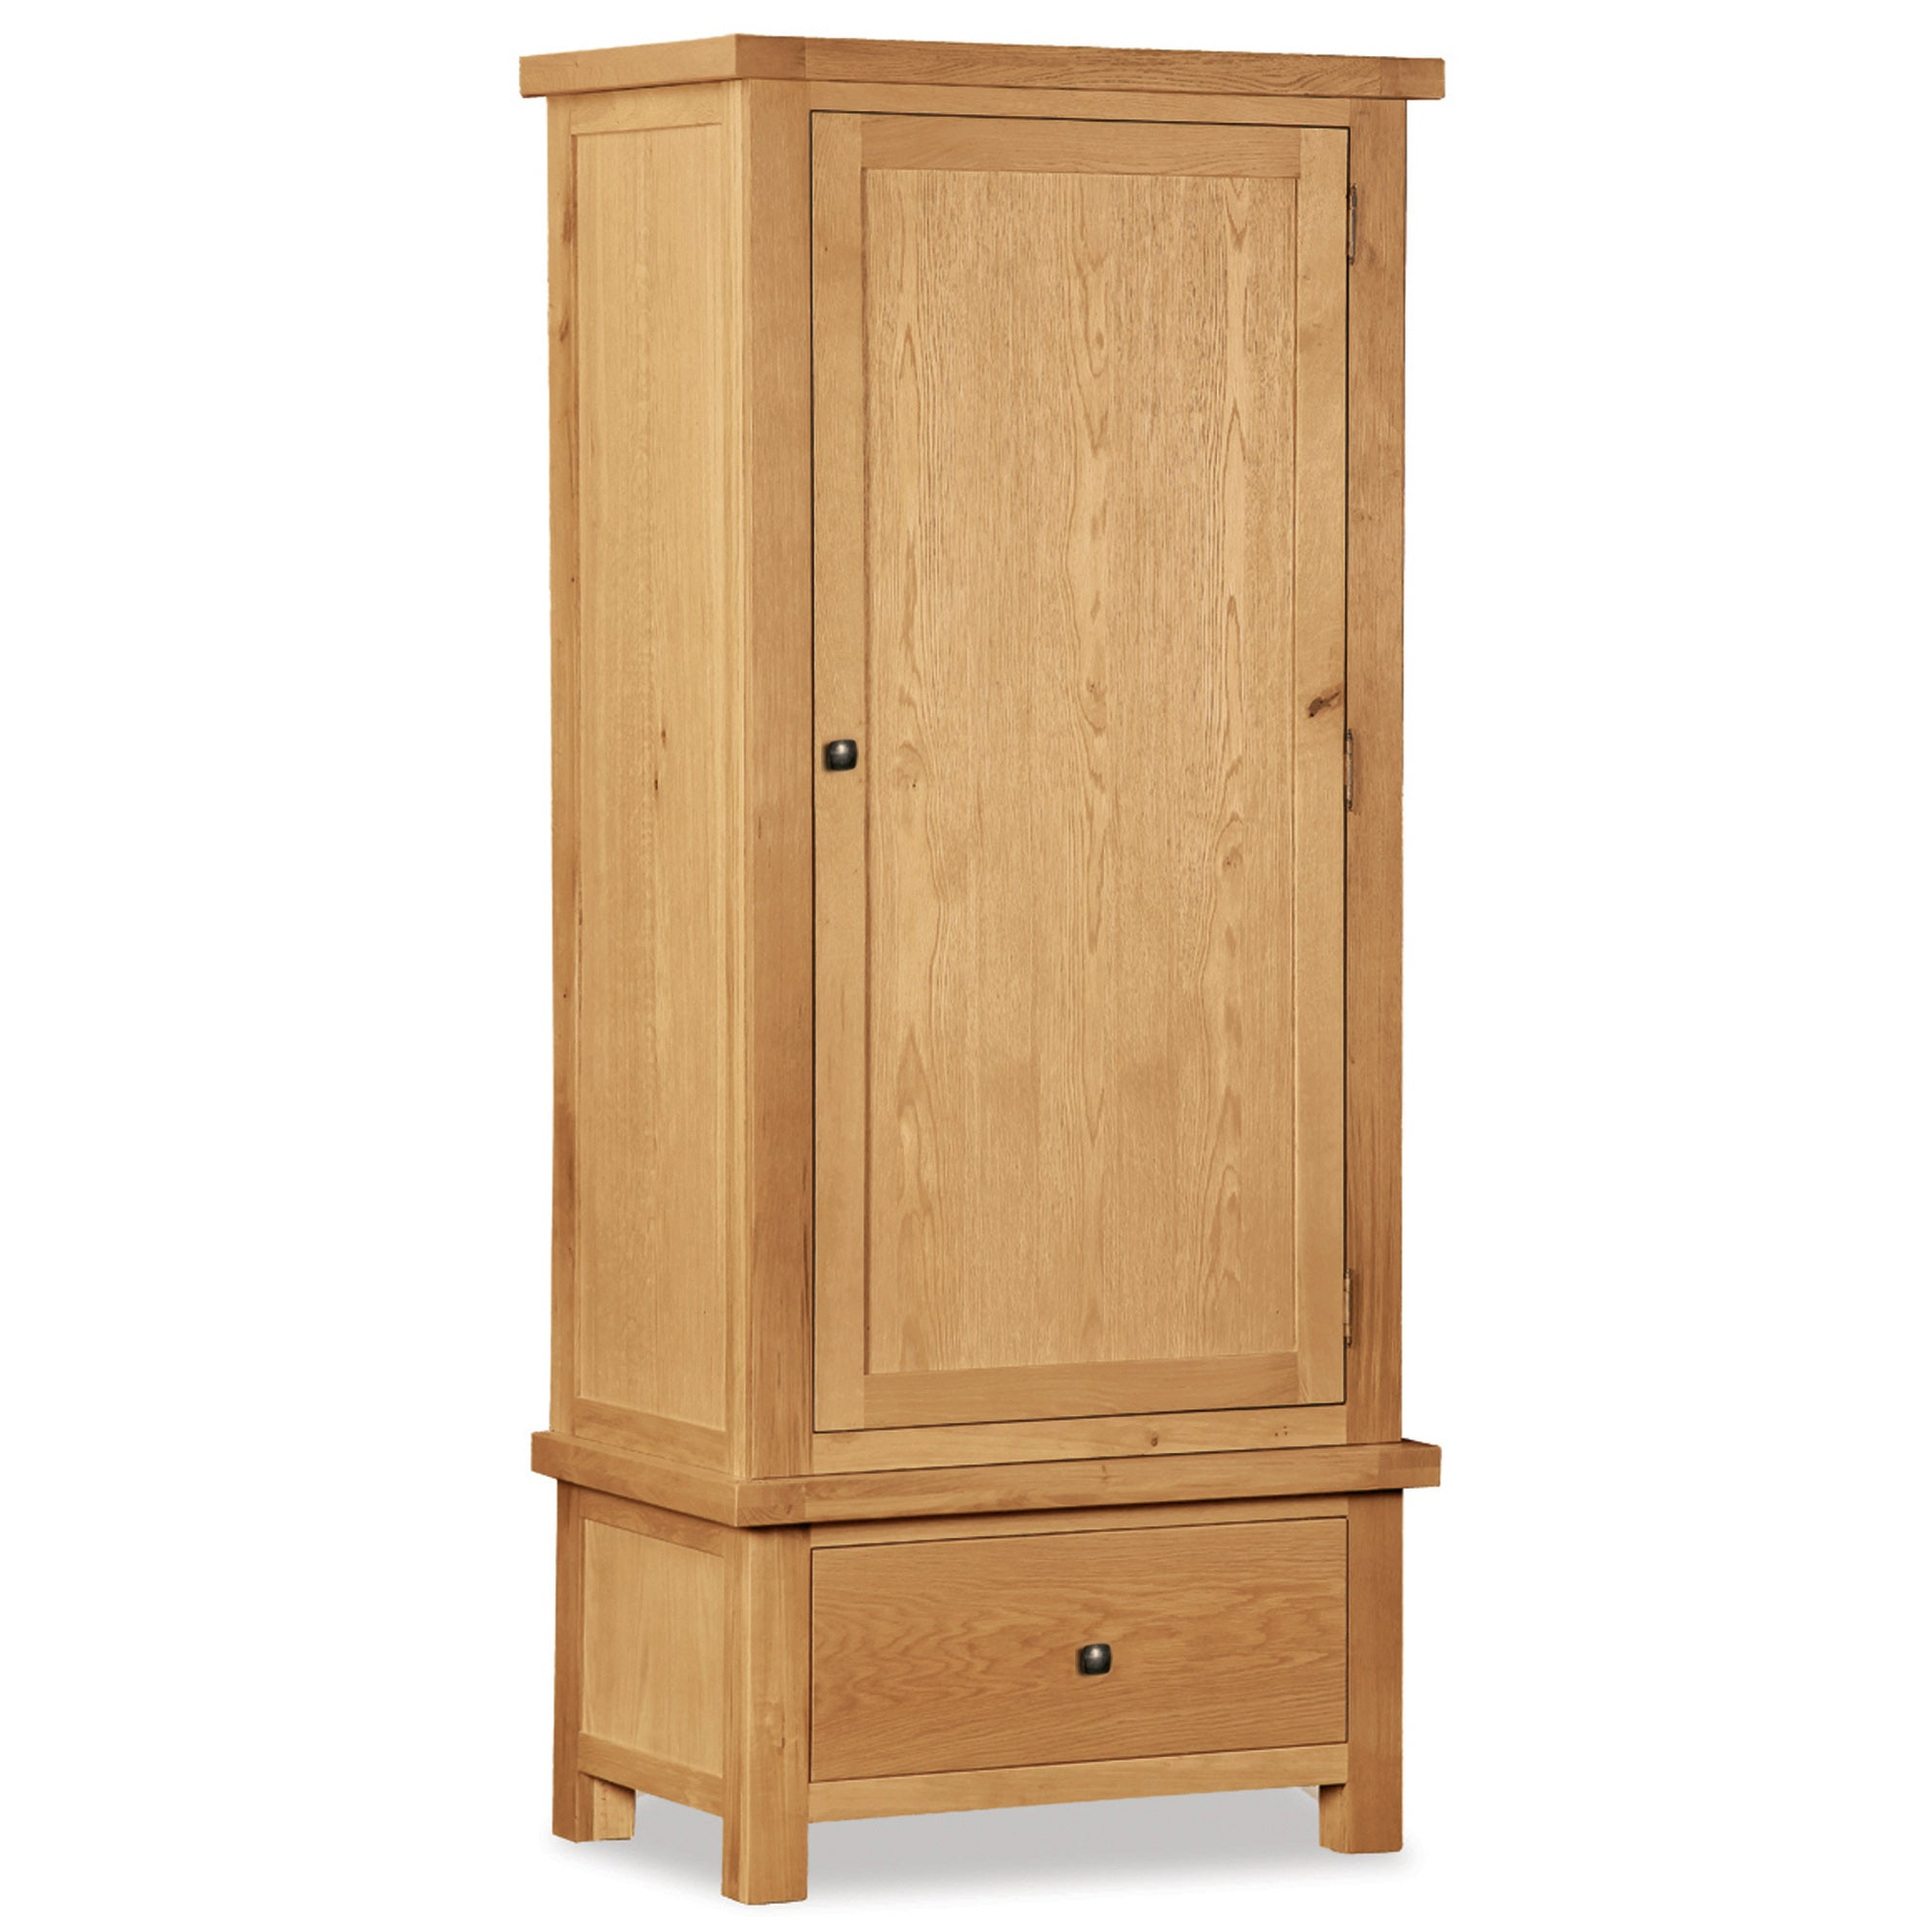 Harrogate Oak Bedroom Furniture Collection